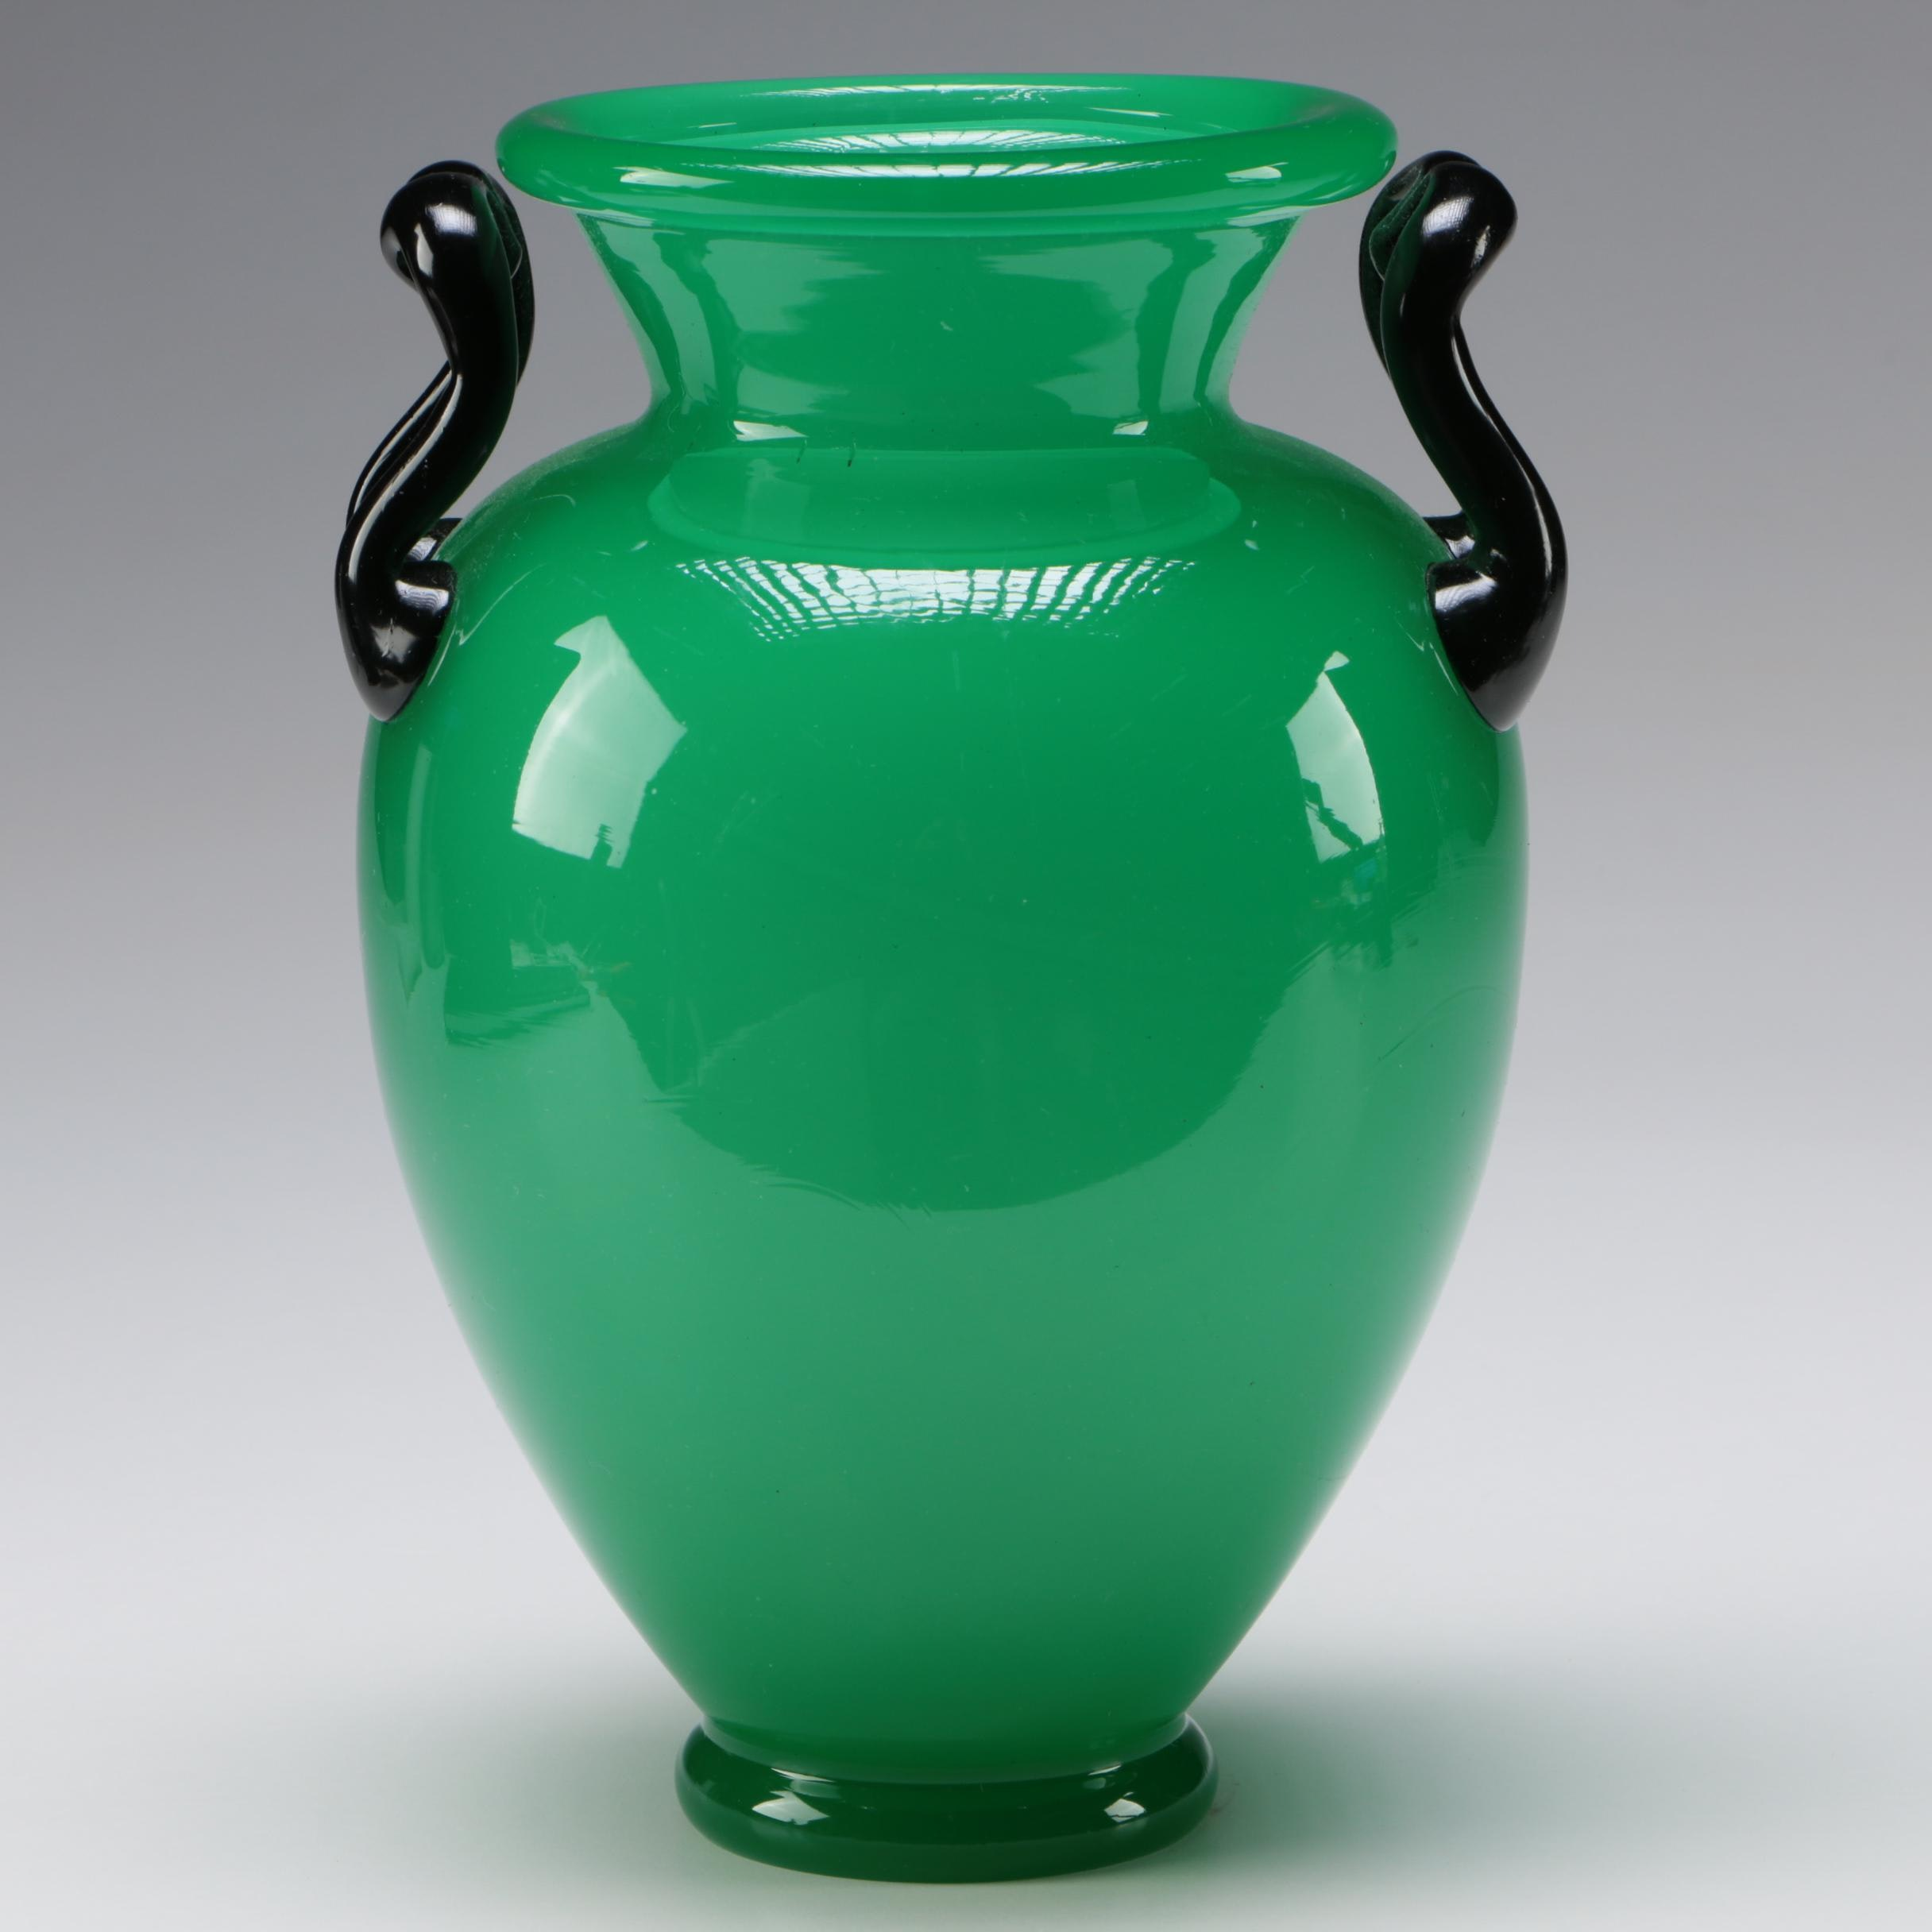 Steuben Jade Green Art Glass Vase with Mirror Black Handles, Early 20th Century